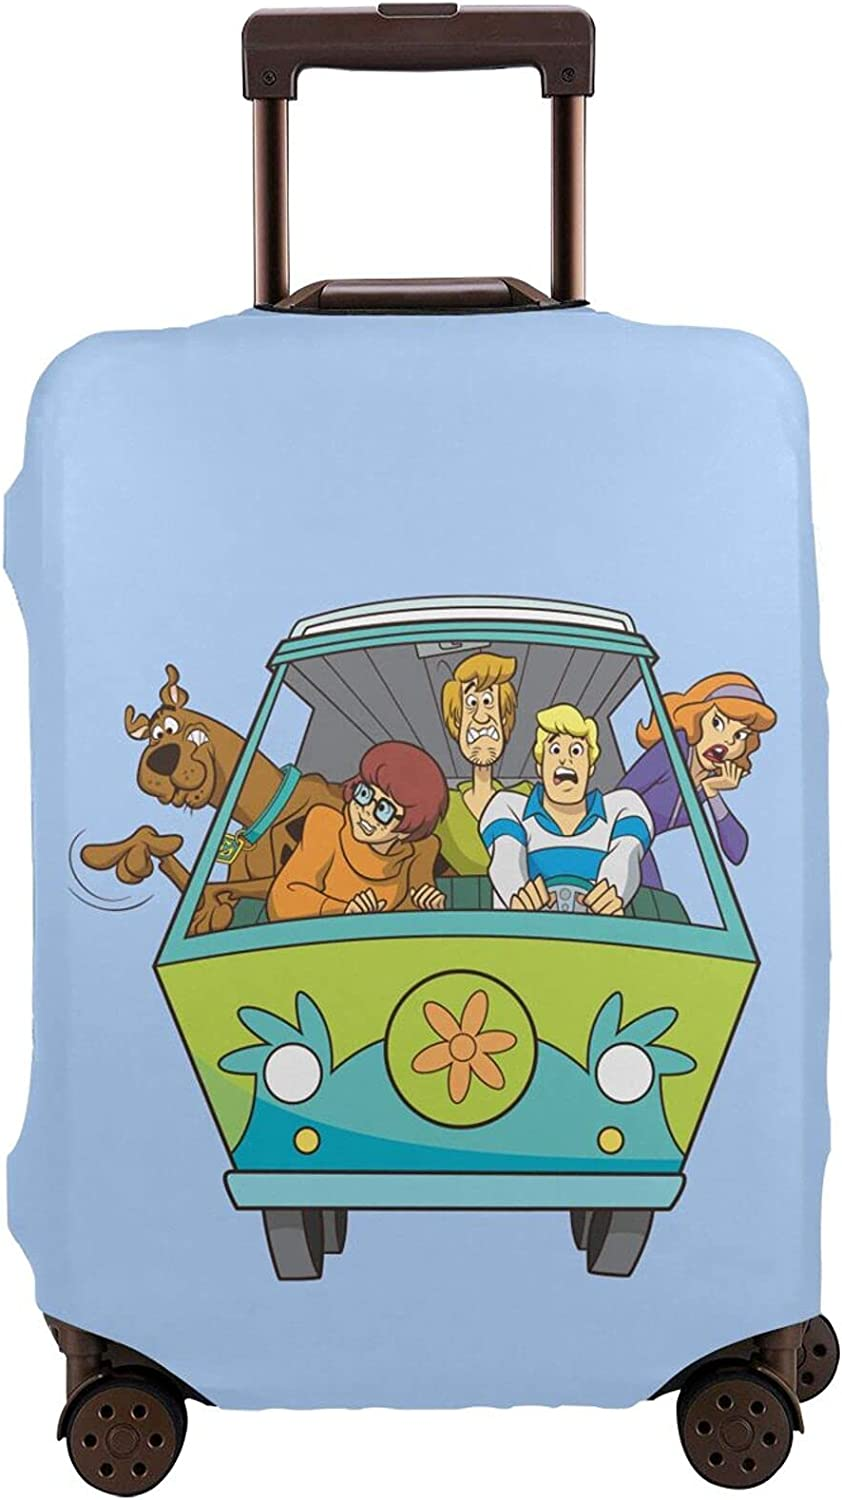 Scooby famous Doo Travel 4 years warranty Suitcase Luggage Washable Protector Protective